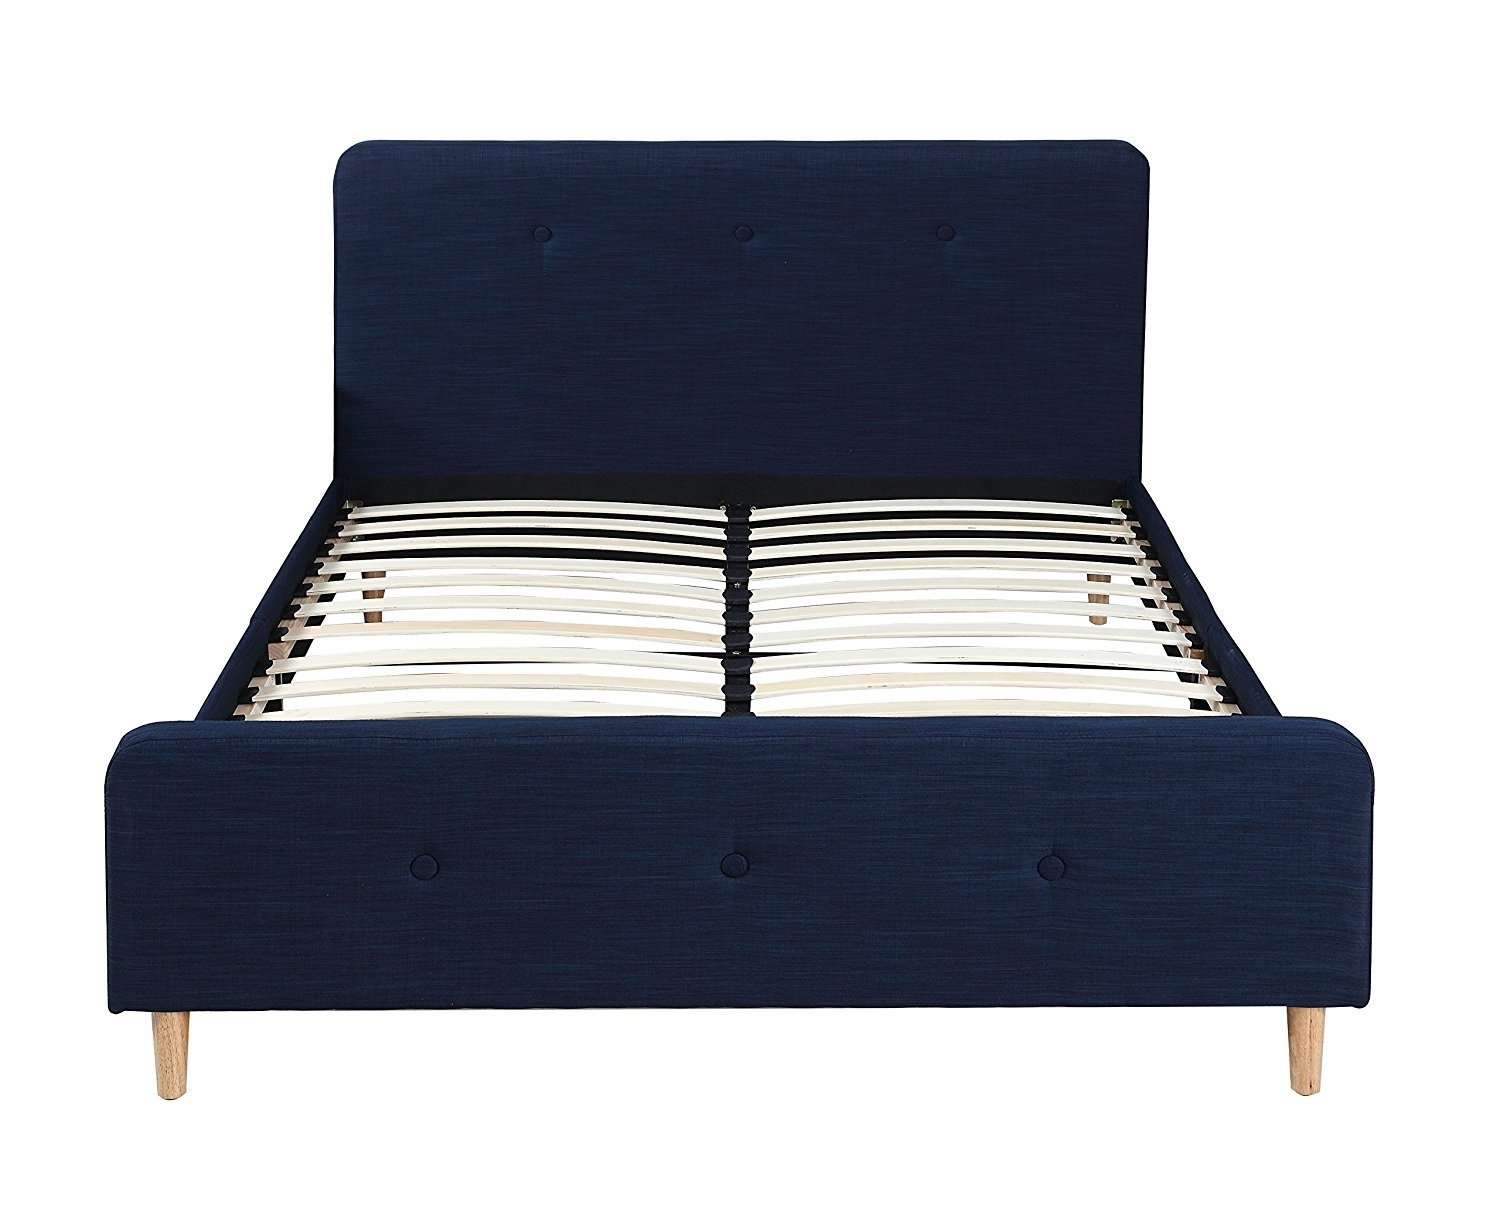 Details About Mid Century Modern Linen Fabric Low Profile Bed Frame Full Size Blue